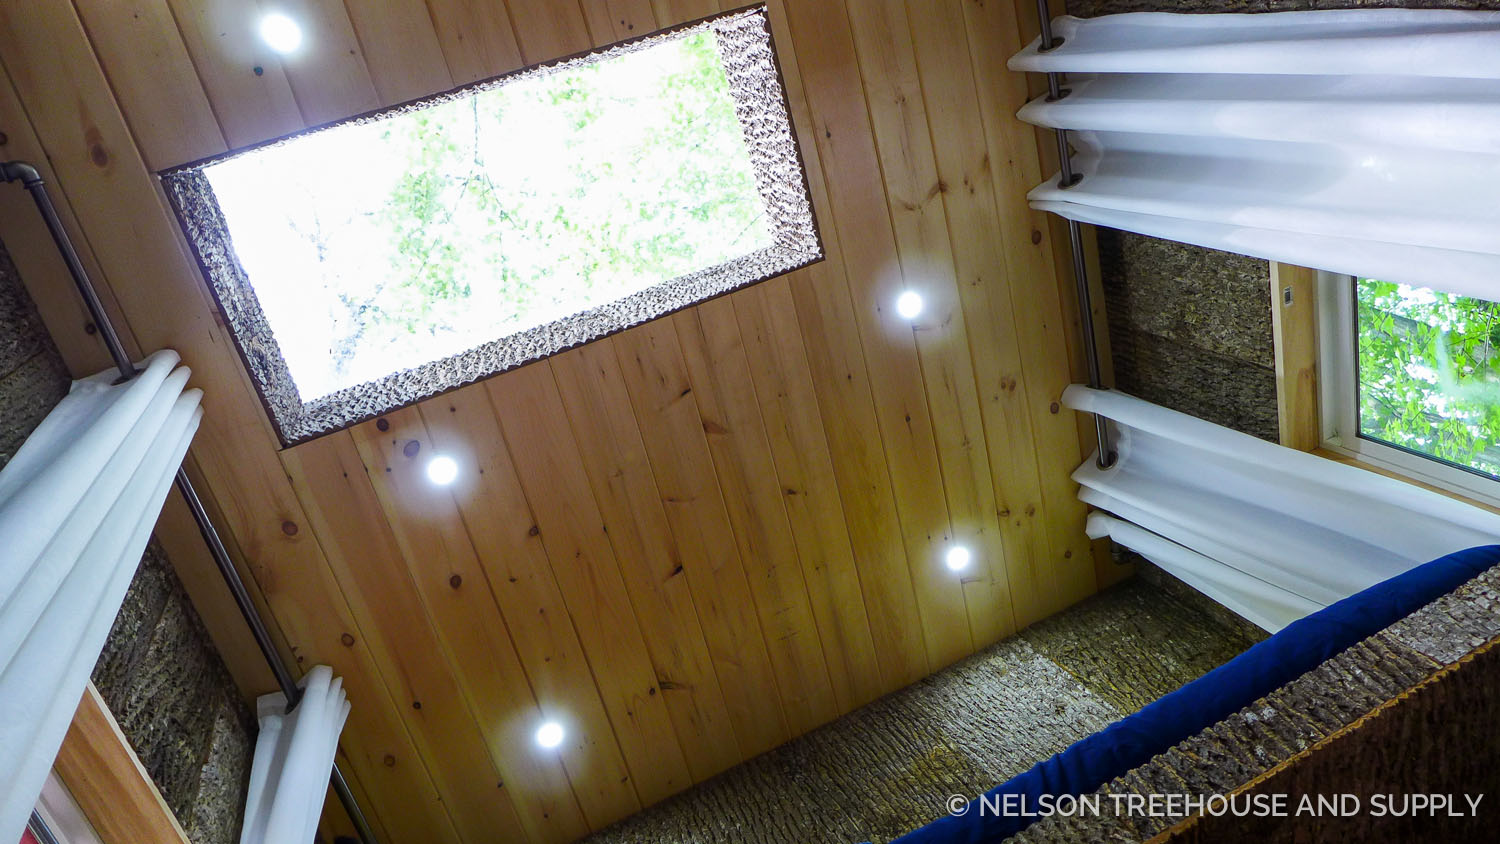 Bark paneling and a large skylight bring the outdoors inside the treehouse.